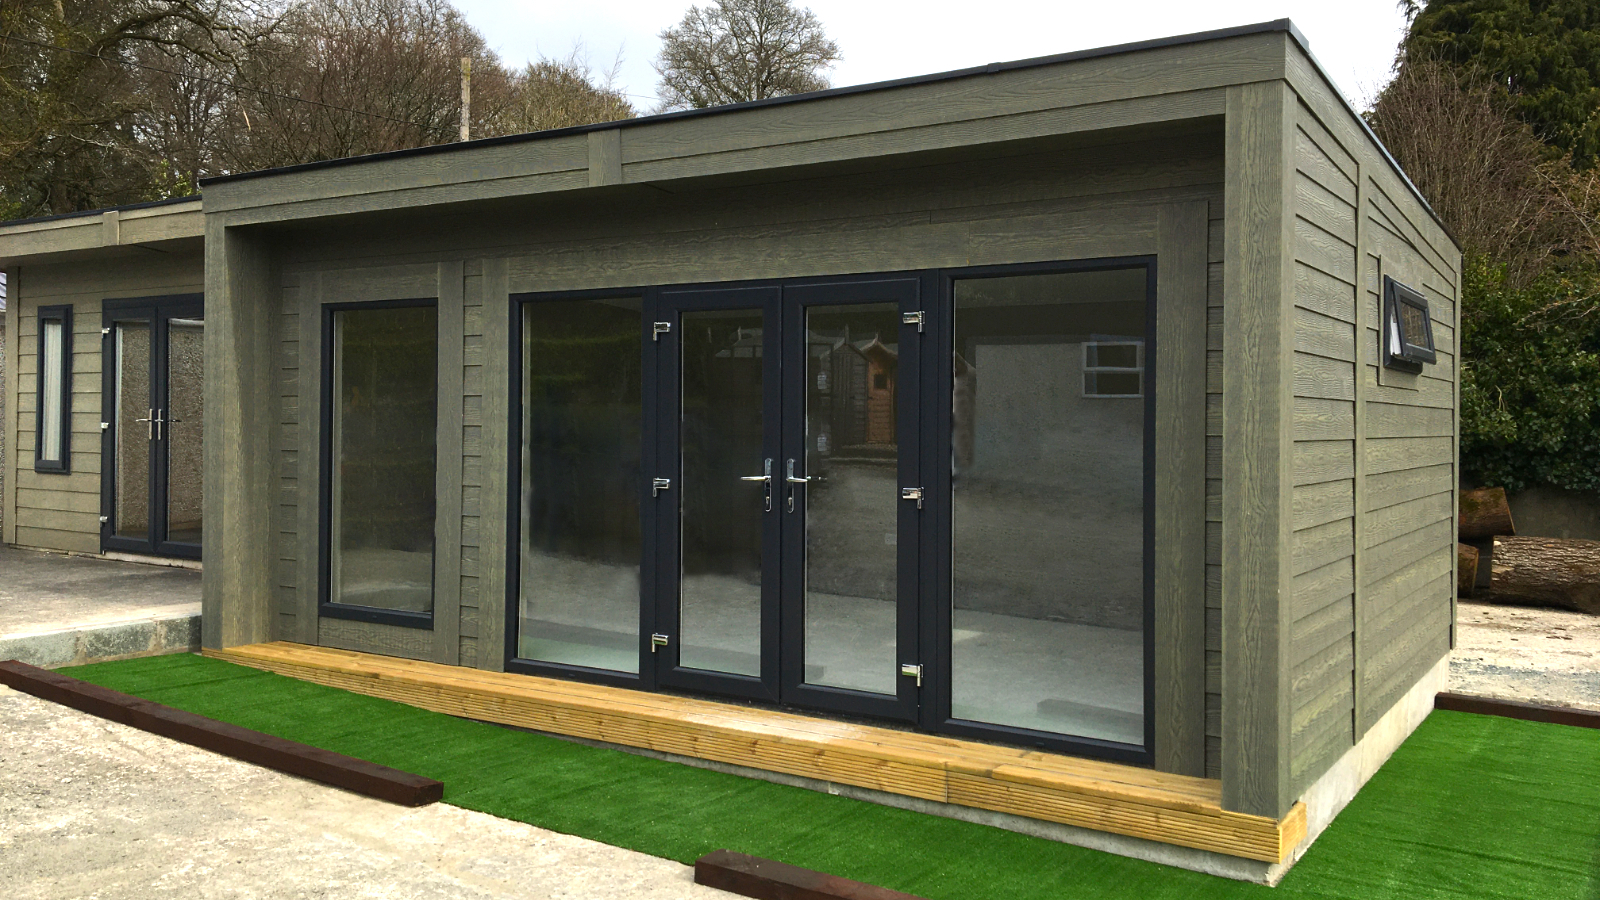 Duraboard Garden Room Outside Garden Office Room Space Double Doors Windows, Extra Room, Teenage Den, Therapy Room, Office Space, Guest Room